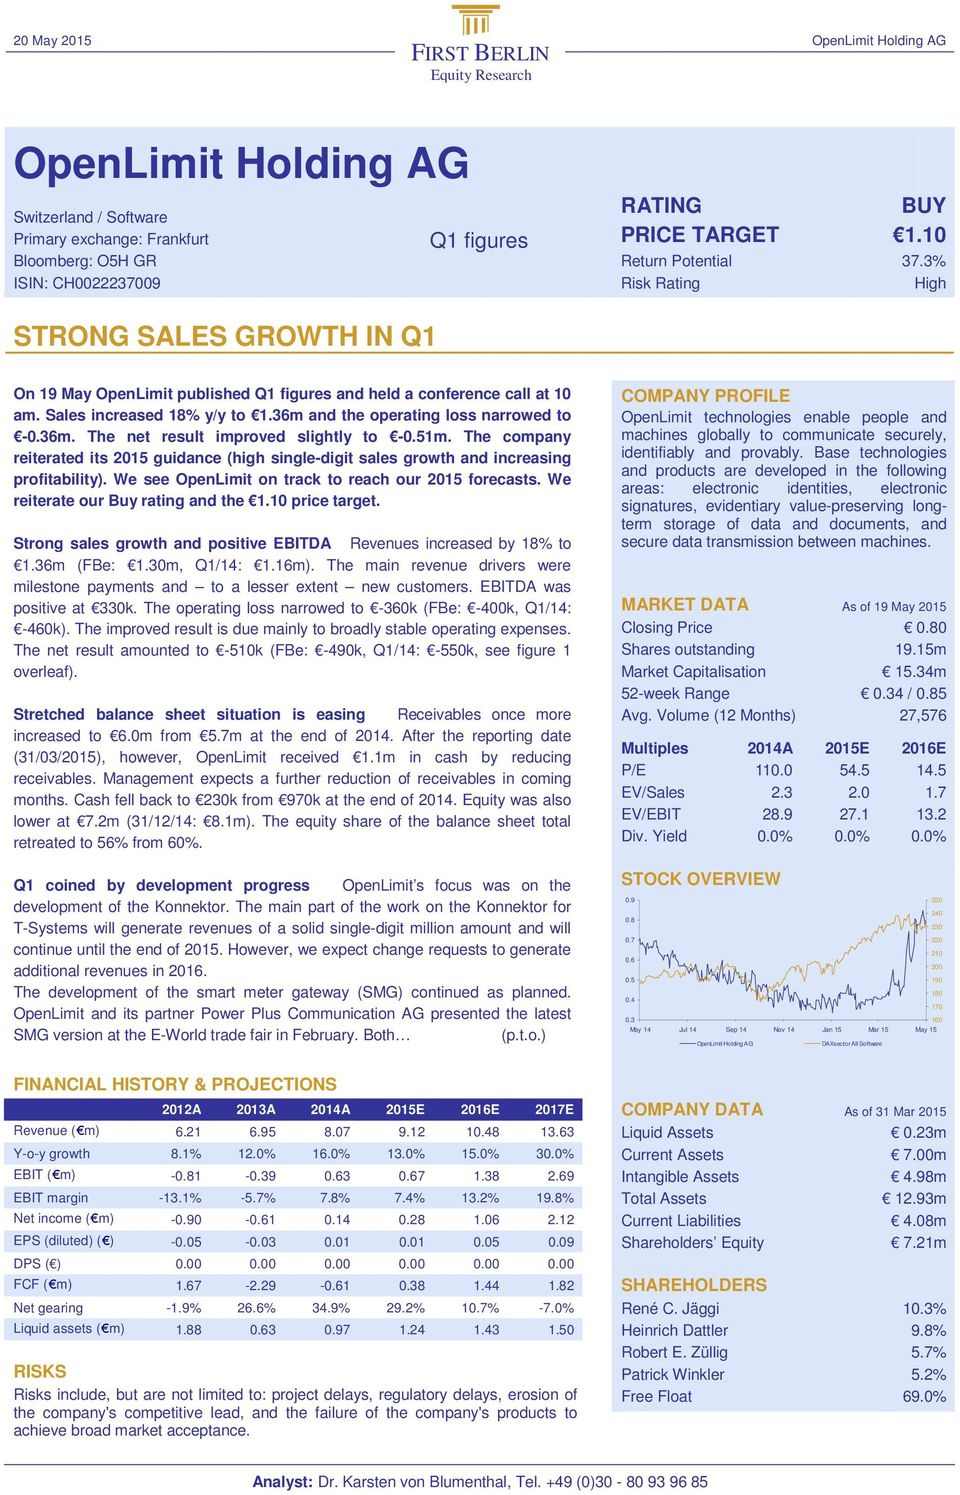 +49 (0)30-80 93 96 85 20 O pe UY On 19 May OpenLimit published Q1 figures and held a conference call at 10 am. Sales increased 18% y/y to 1.36m and the operating loss narrowed to -0.36m. The net result improved slightly to -0.